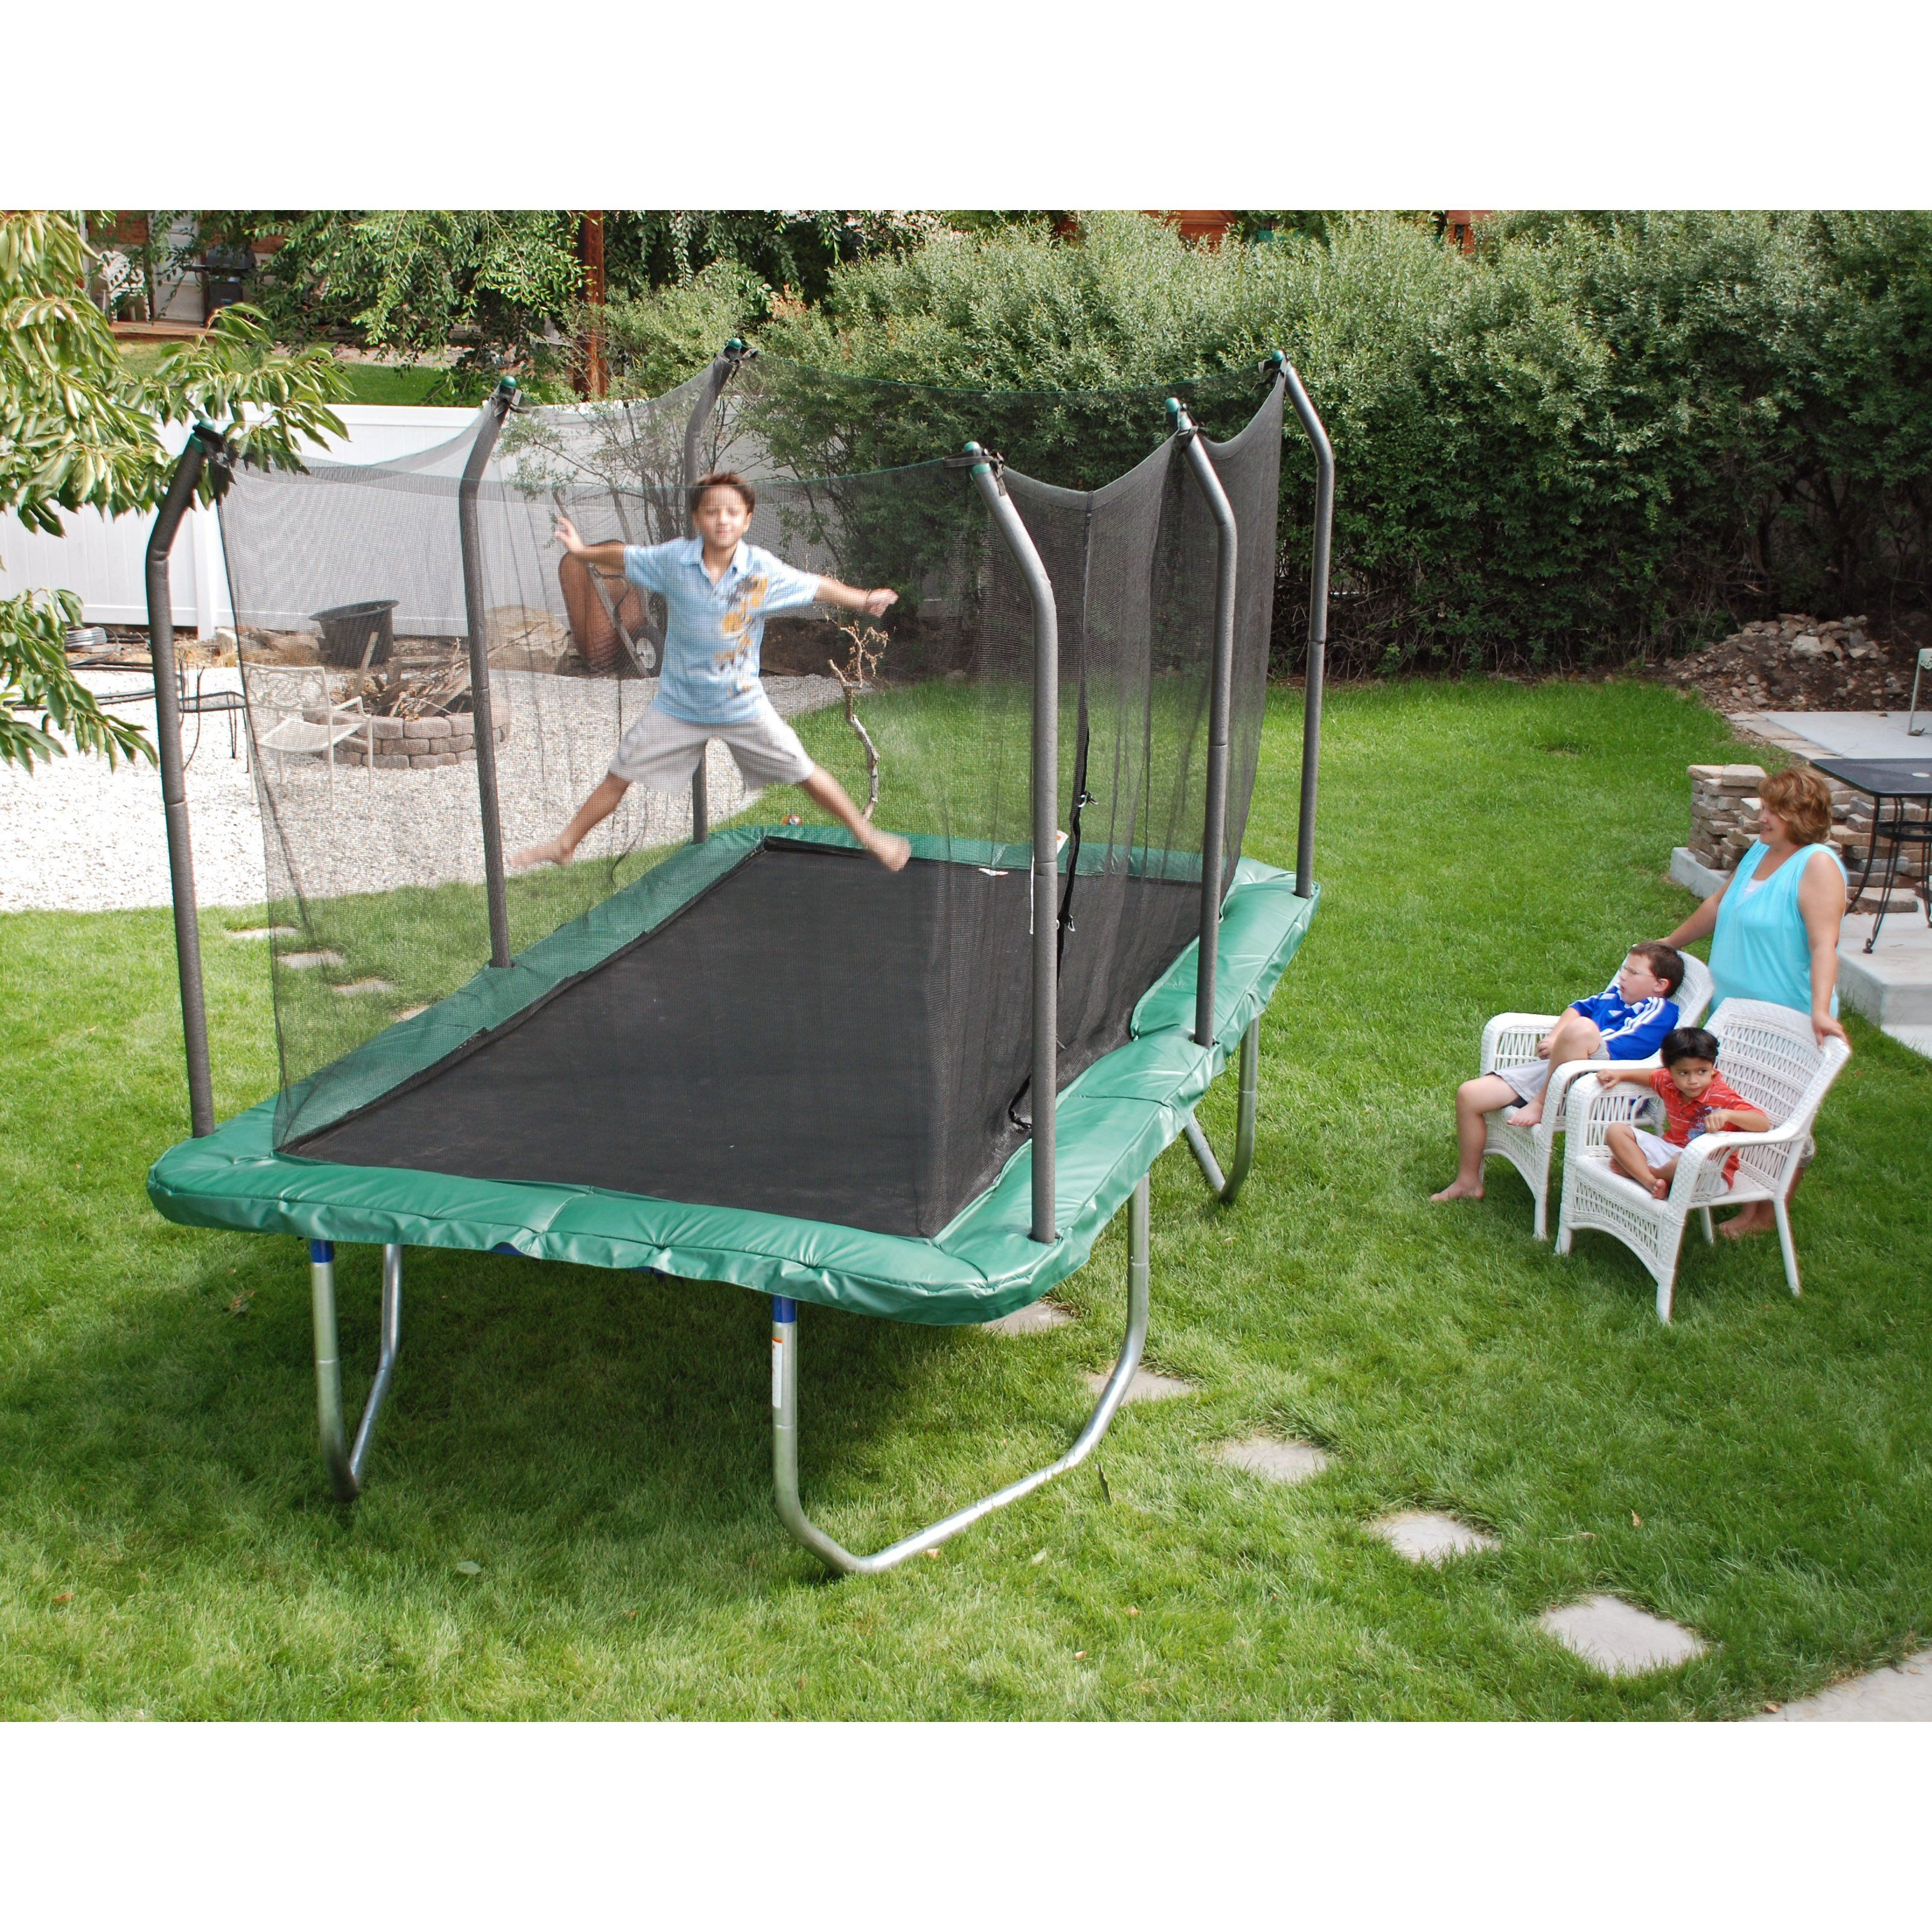 Have To Have It. Skywalker Rectangle 8 X 14 Ft. Trampoline